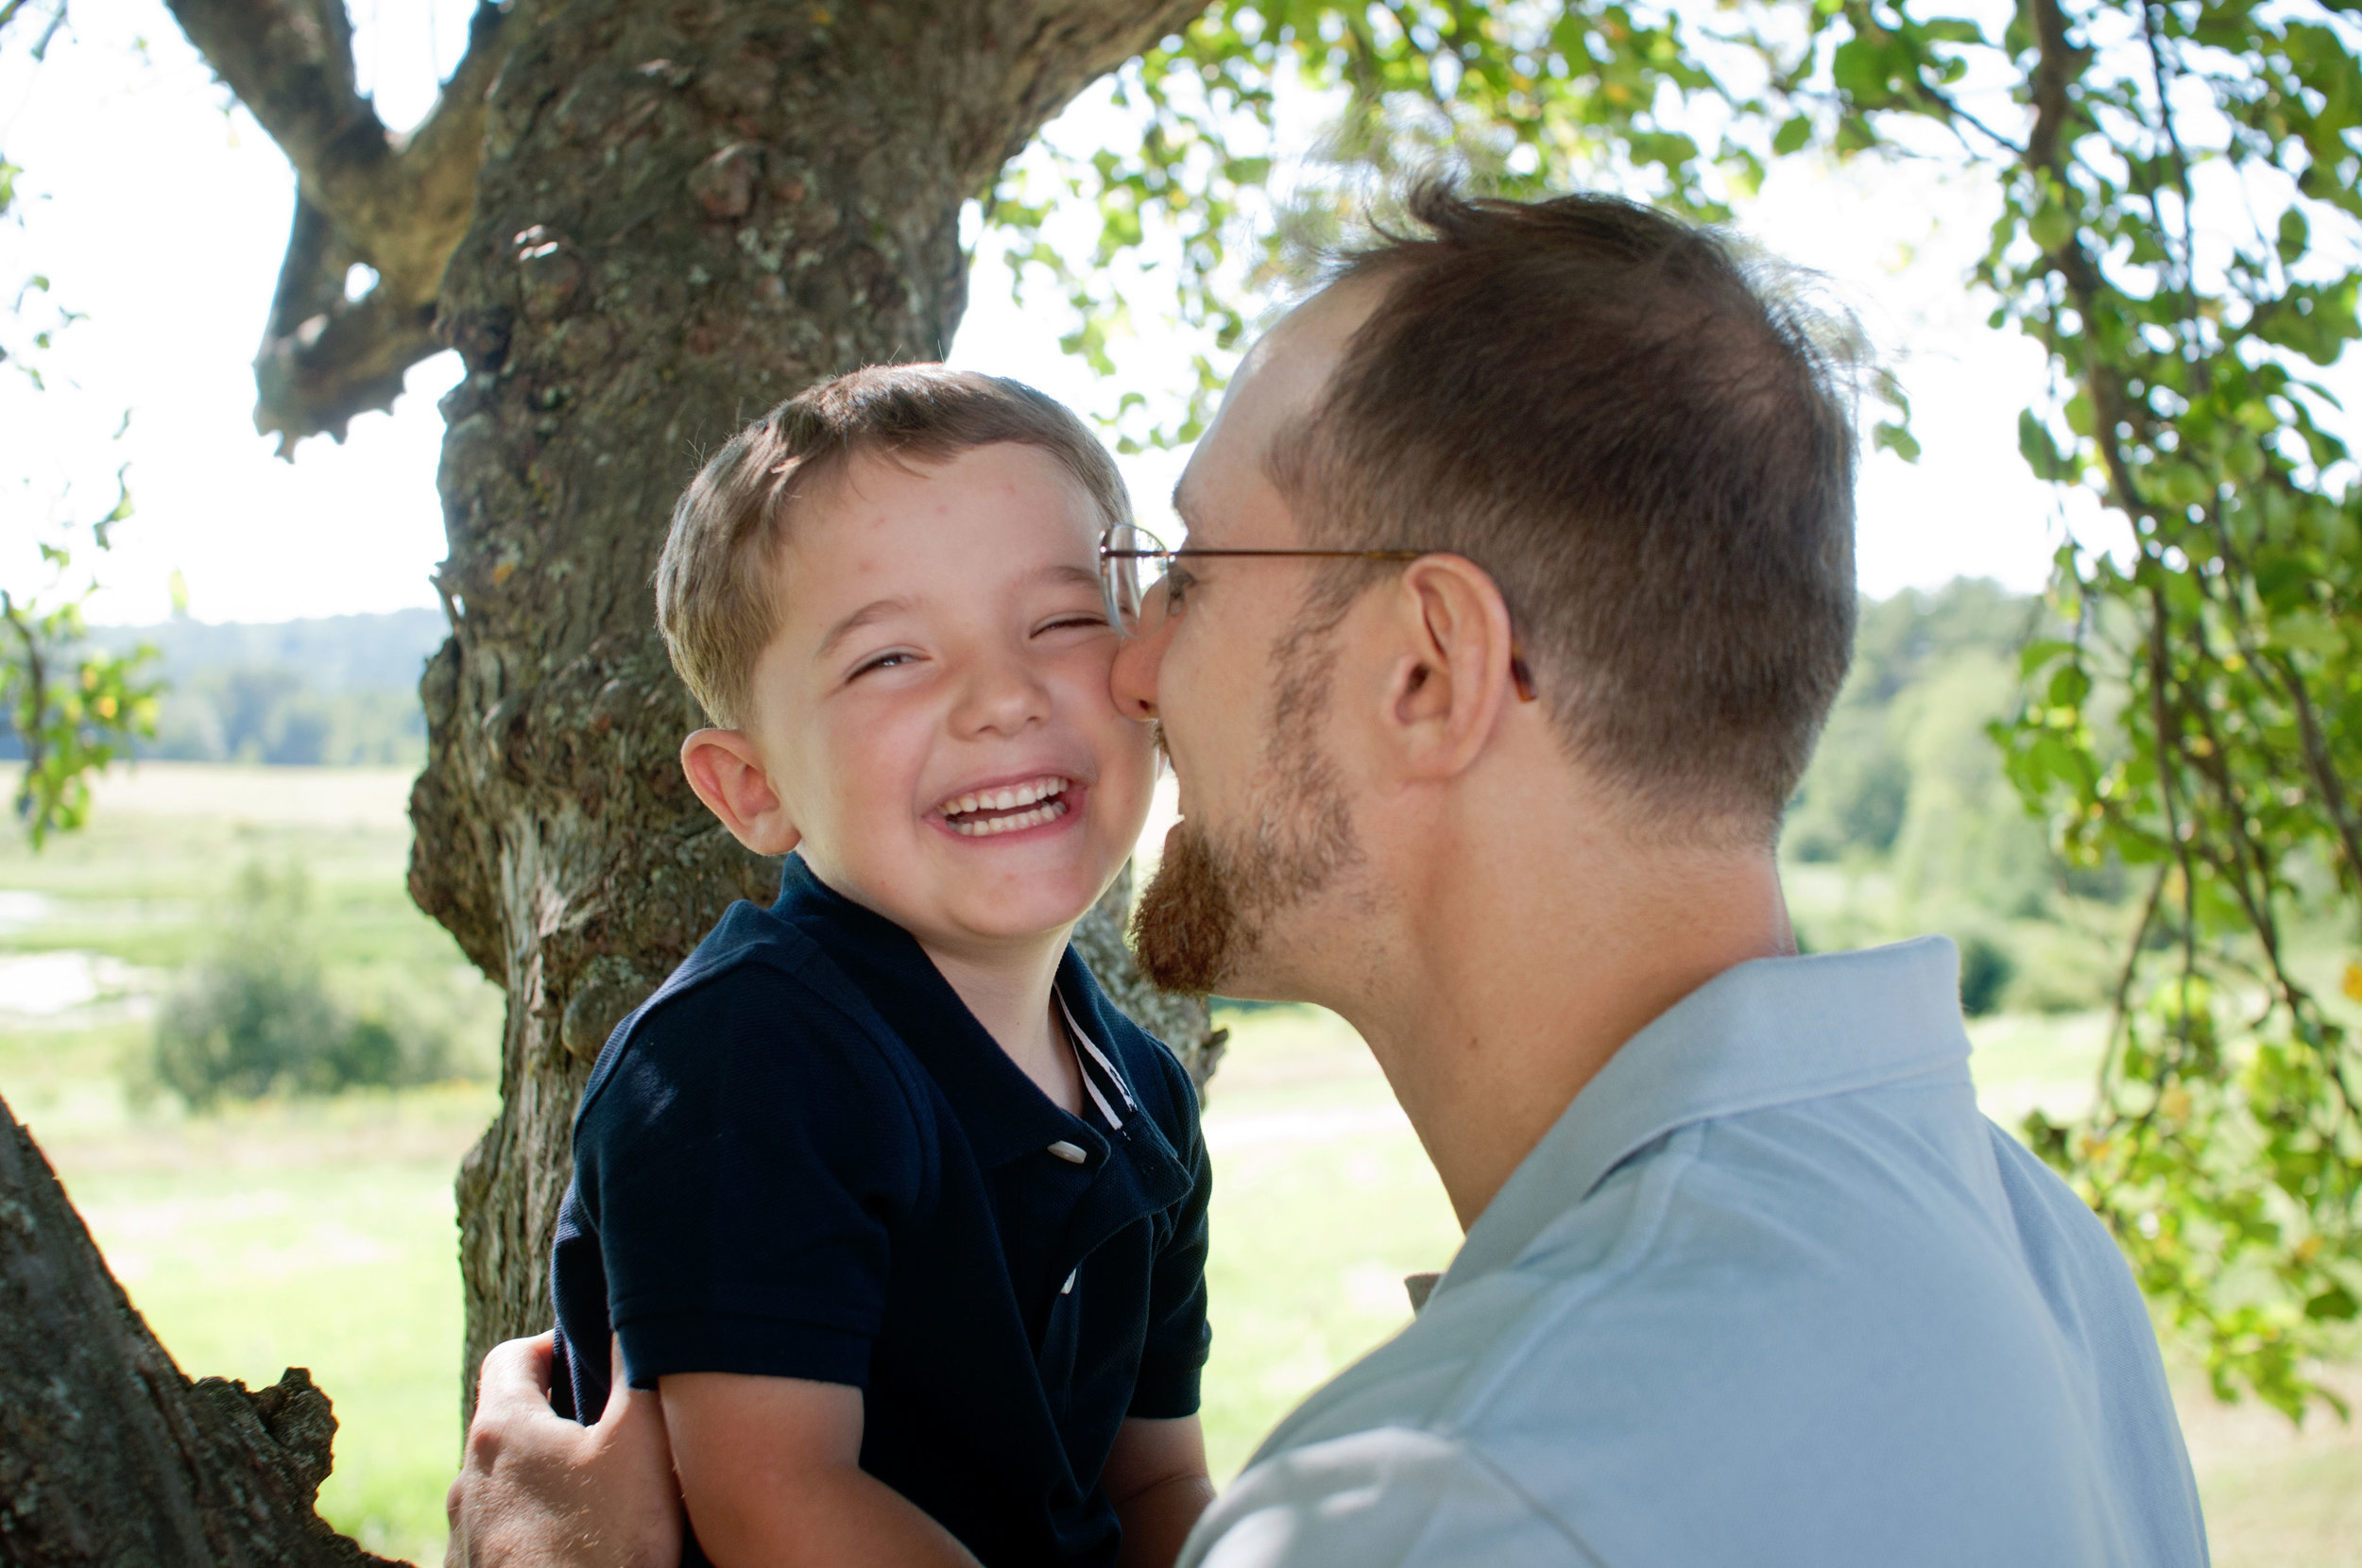 silly photo of young boy and his father giggling together in a shady tree